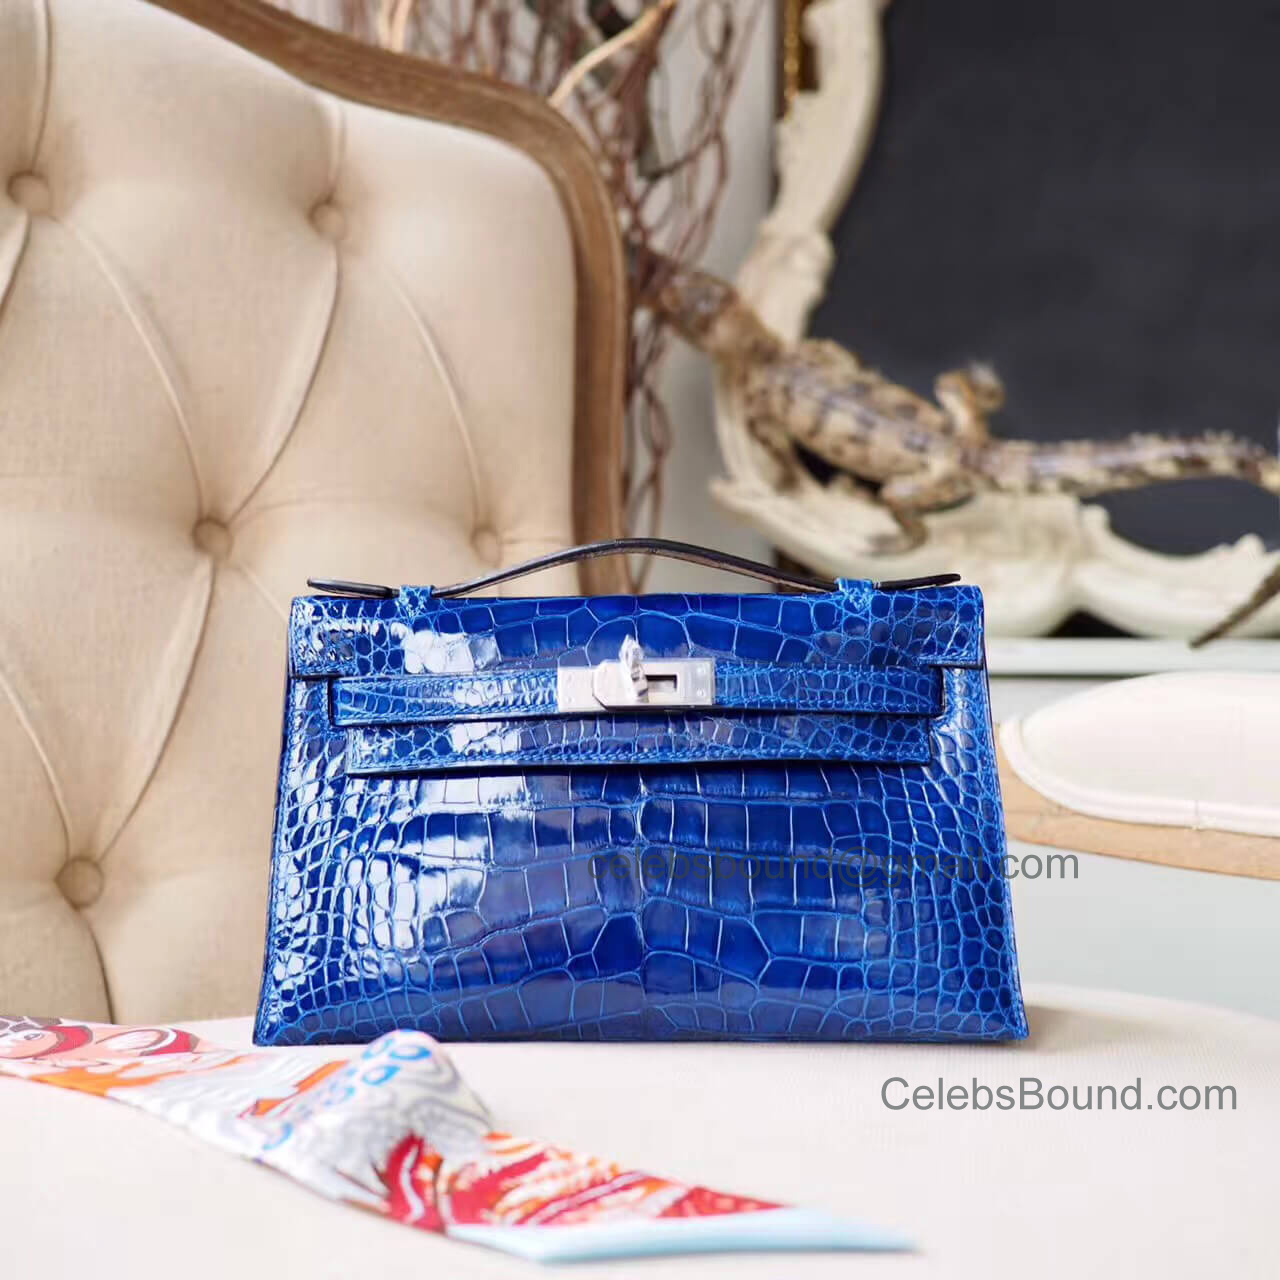 Replica Hermes Mini Kelly 22 Pochette Bag in Blue Electric Shiny Alligator PHW